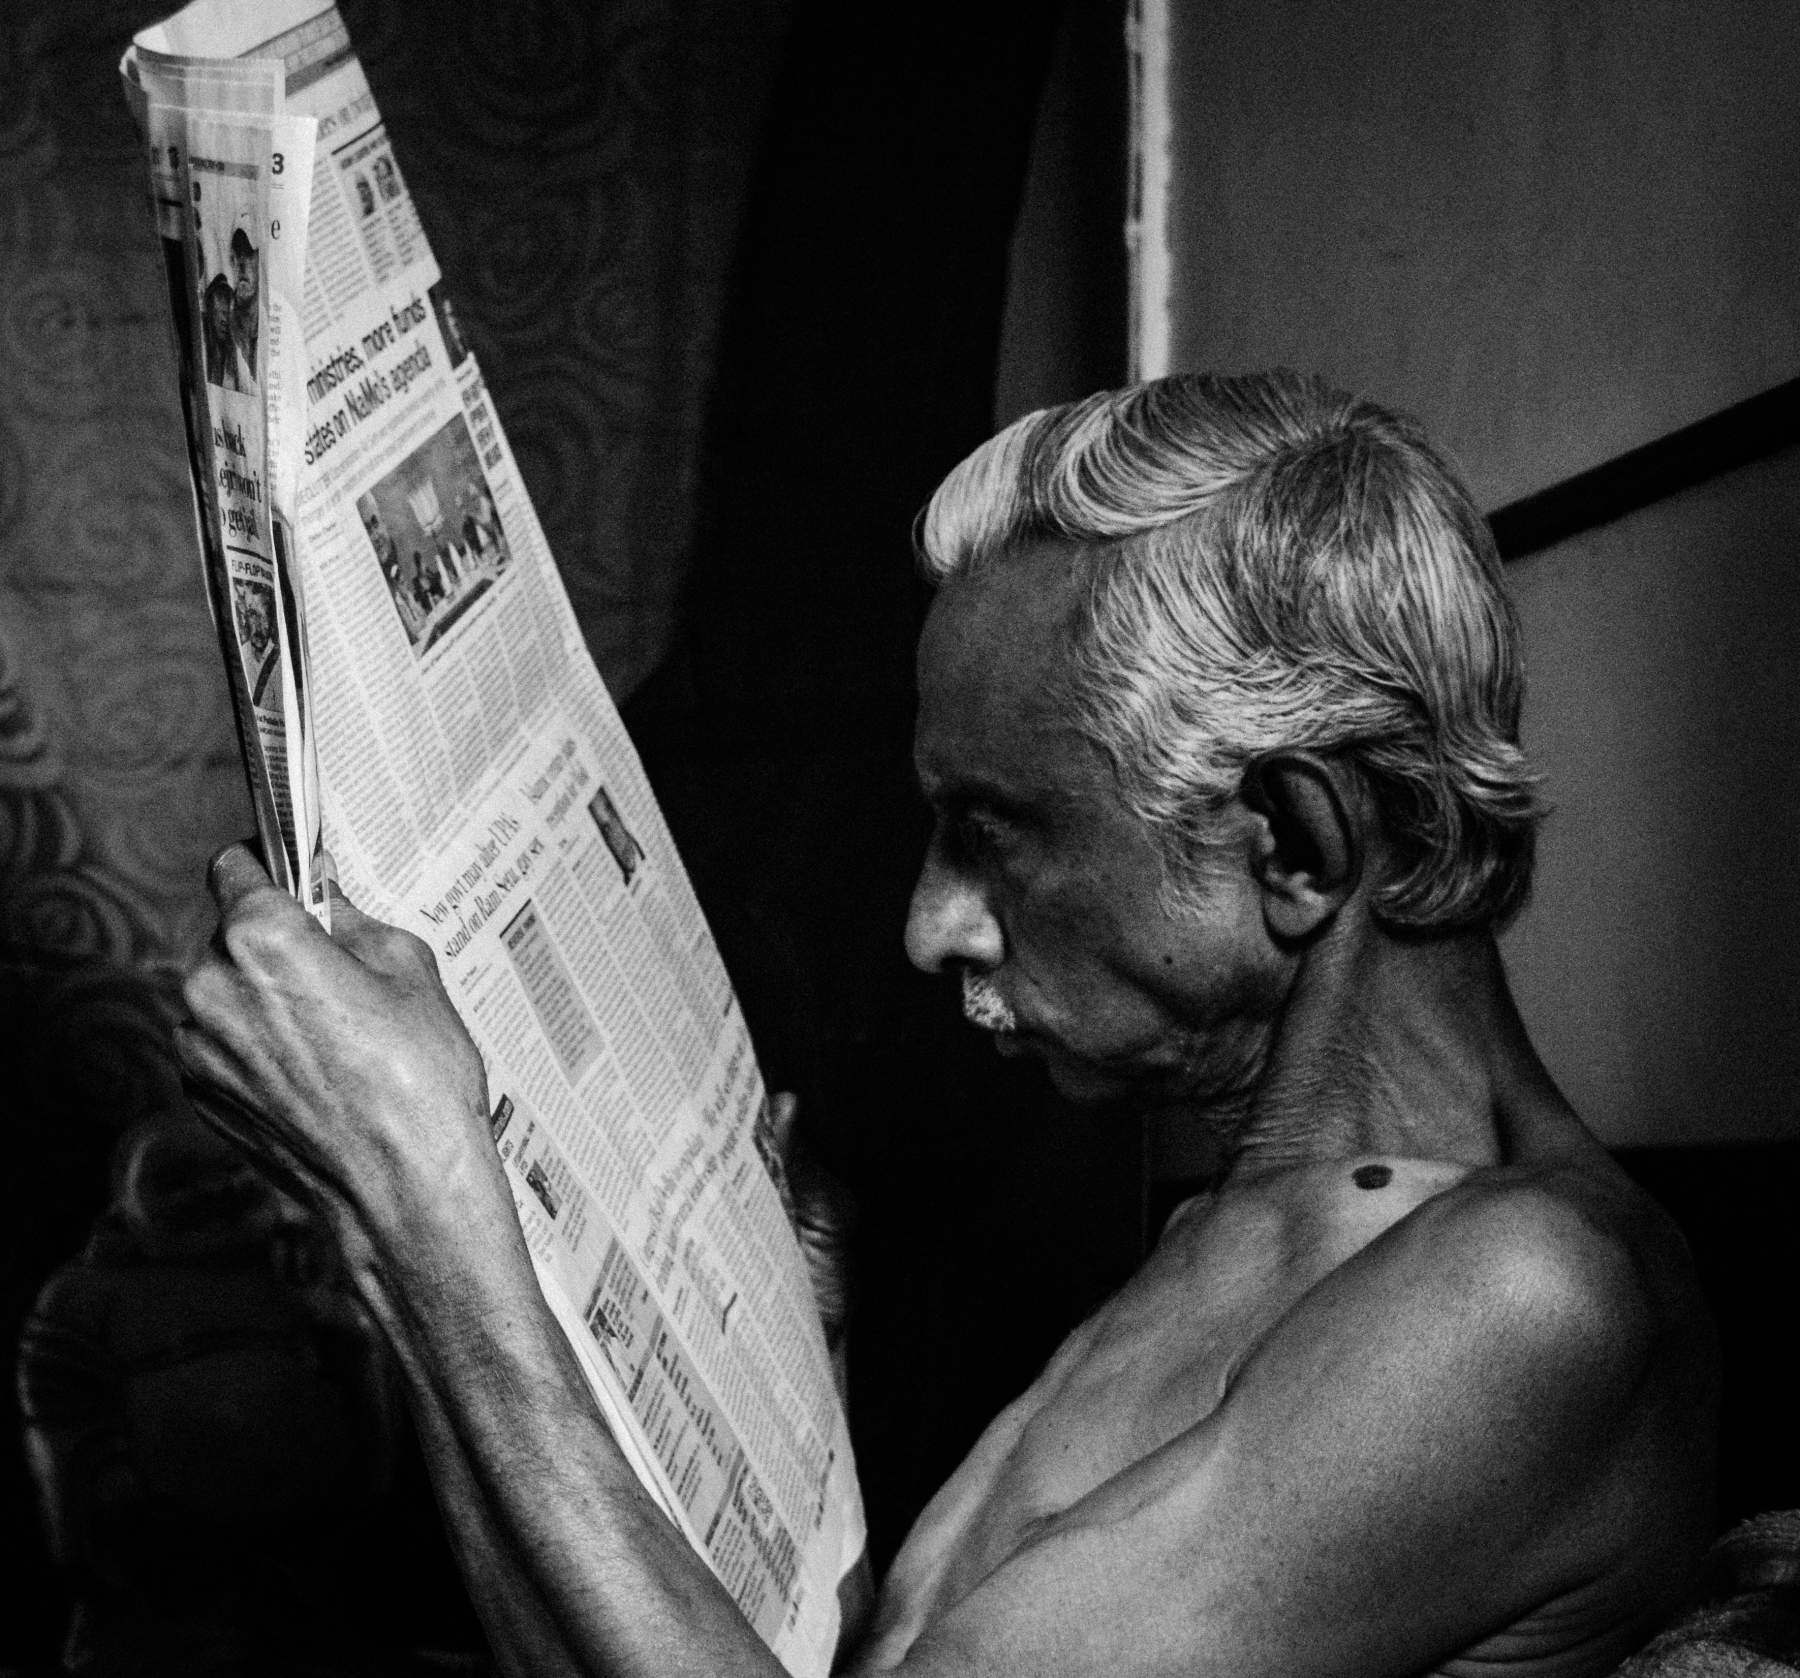 My father is an avid newspaper reader. I saw him engrossed in it so much, that I couldn't resist myself. I asked him to stay still and keep doing what he is doing and I switched the light off and opened the curtain of the window slightly.